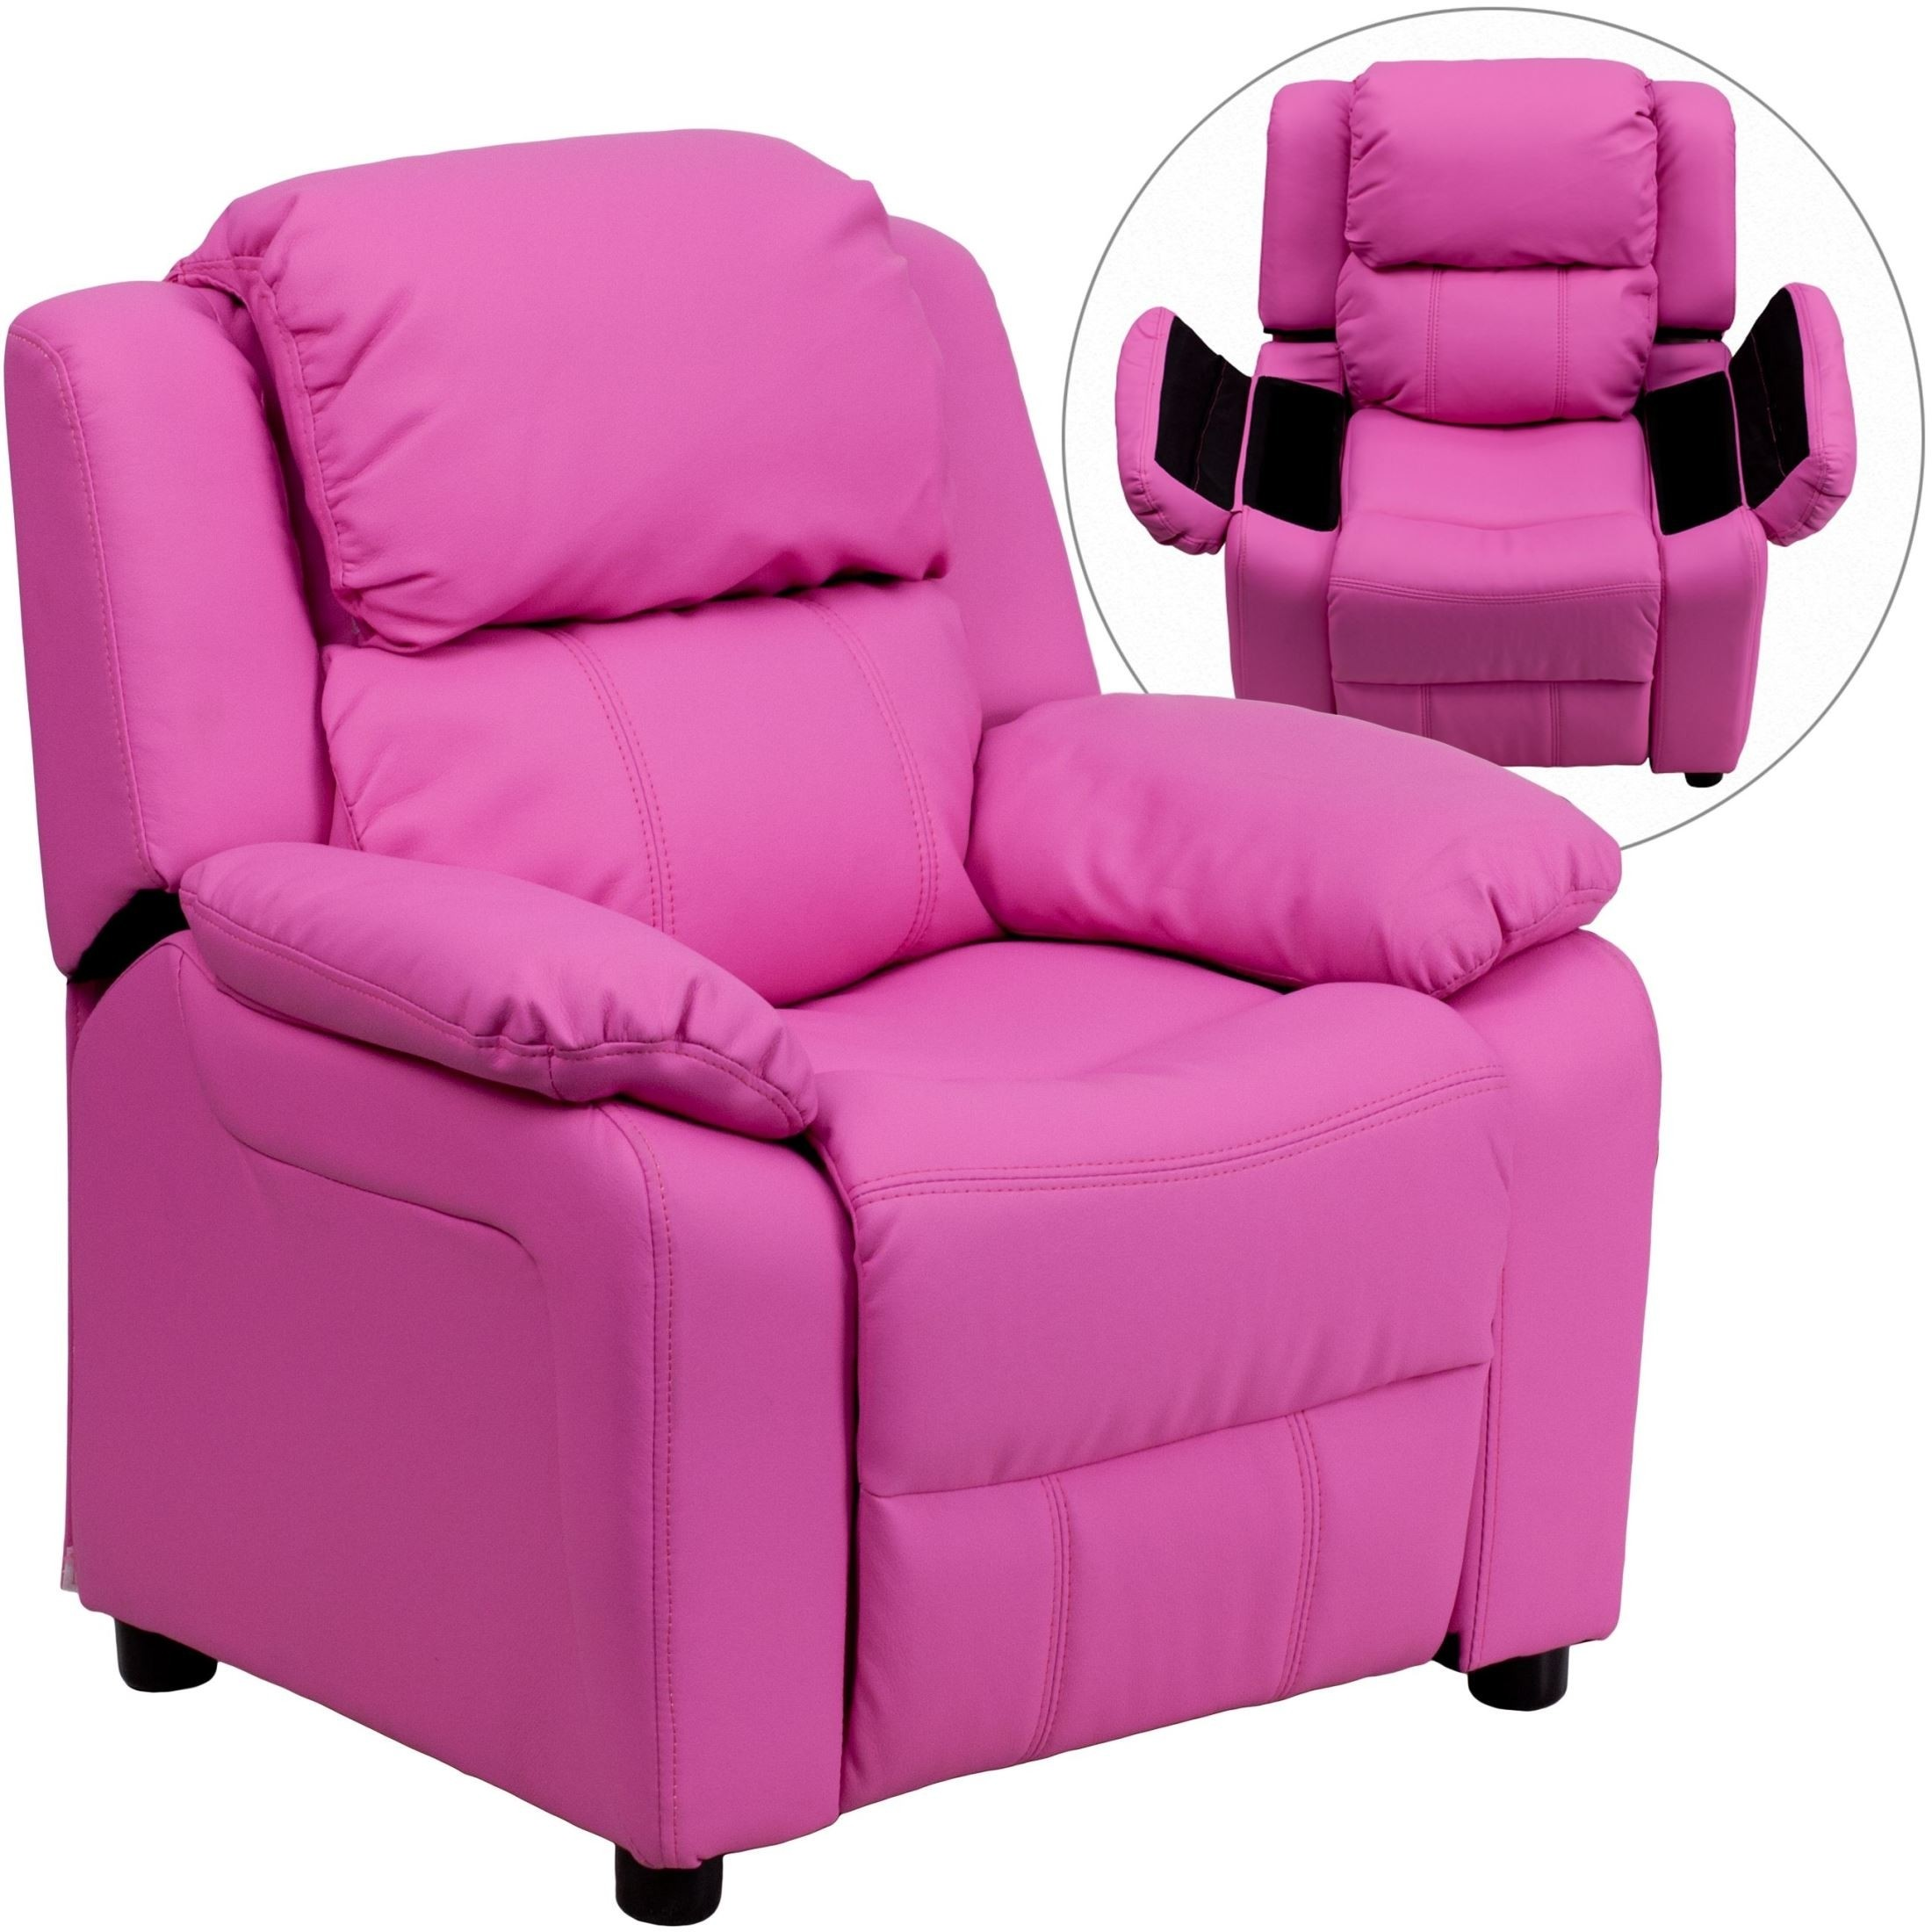 Lovely Flash Furniture Deluxe Heavily Padded Contemporary Hot Pink Vinyl Kids  Recliner With Storage Arms [BT